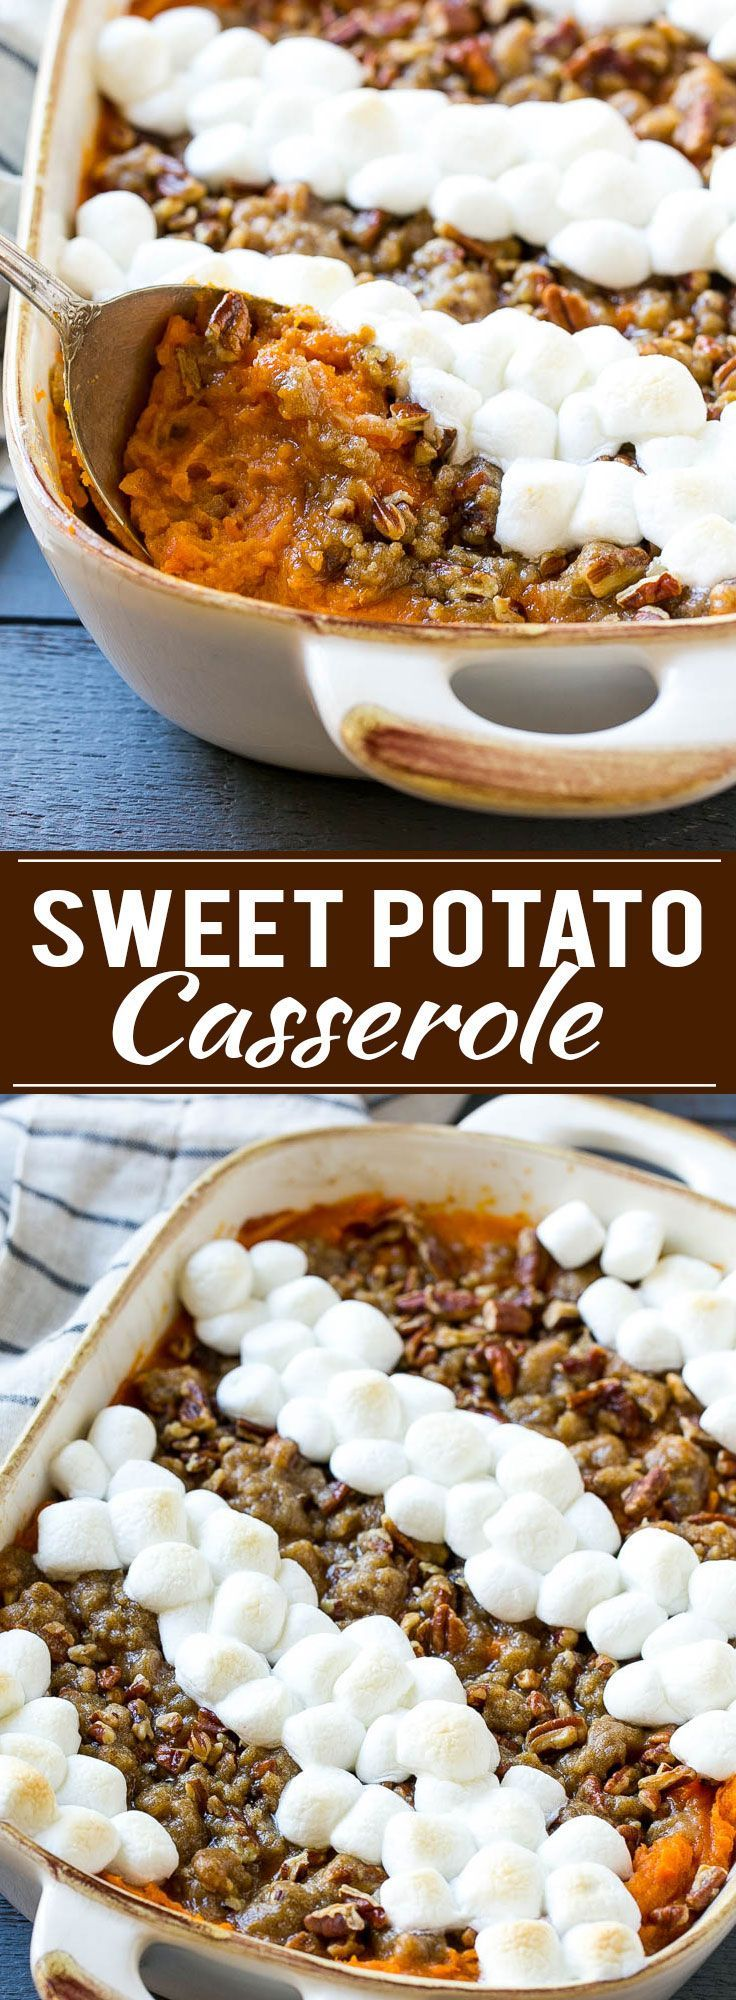 This recipe for a sweet potato casserole with marshmallows is mashed spiced sweet potatoes, topped with both a pecan streusel topping and plenty of mini marshmallows. A holiday classic that's a family favorite!